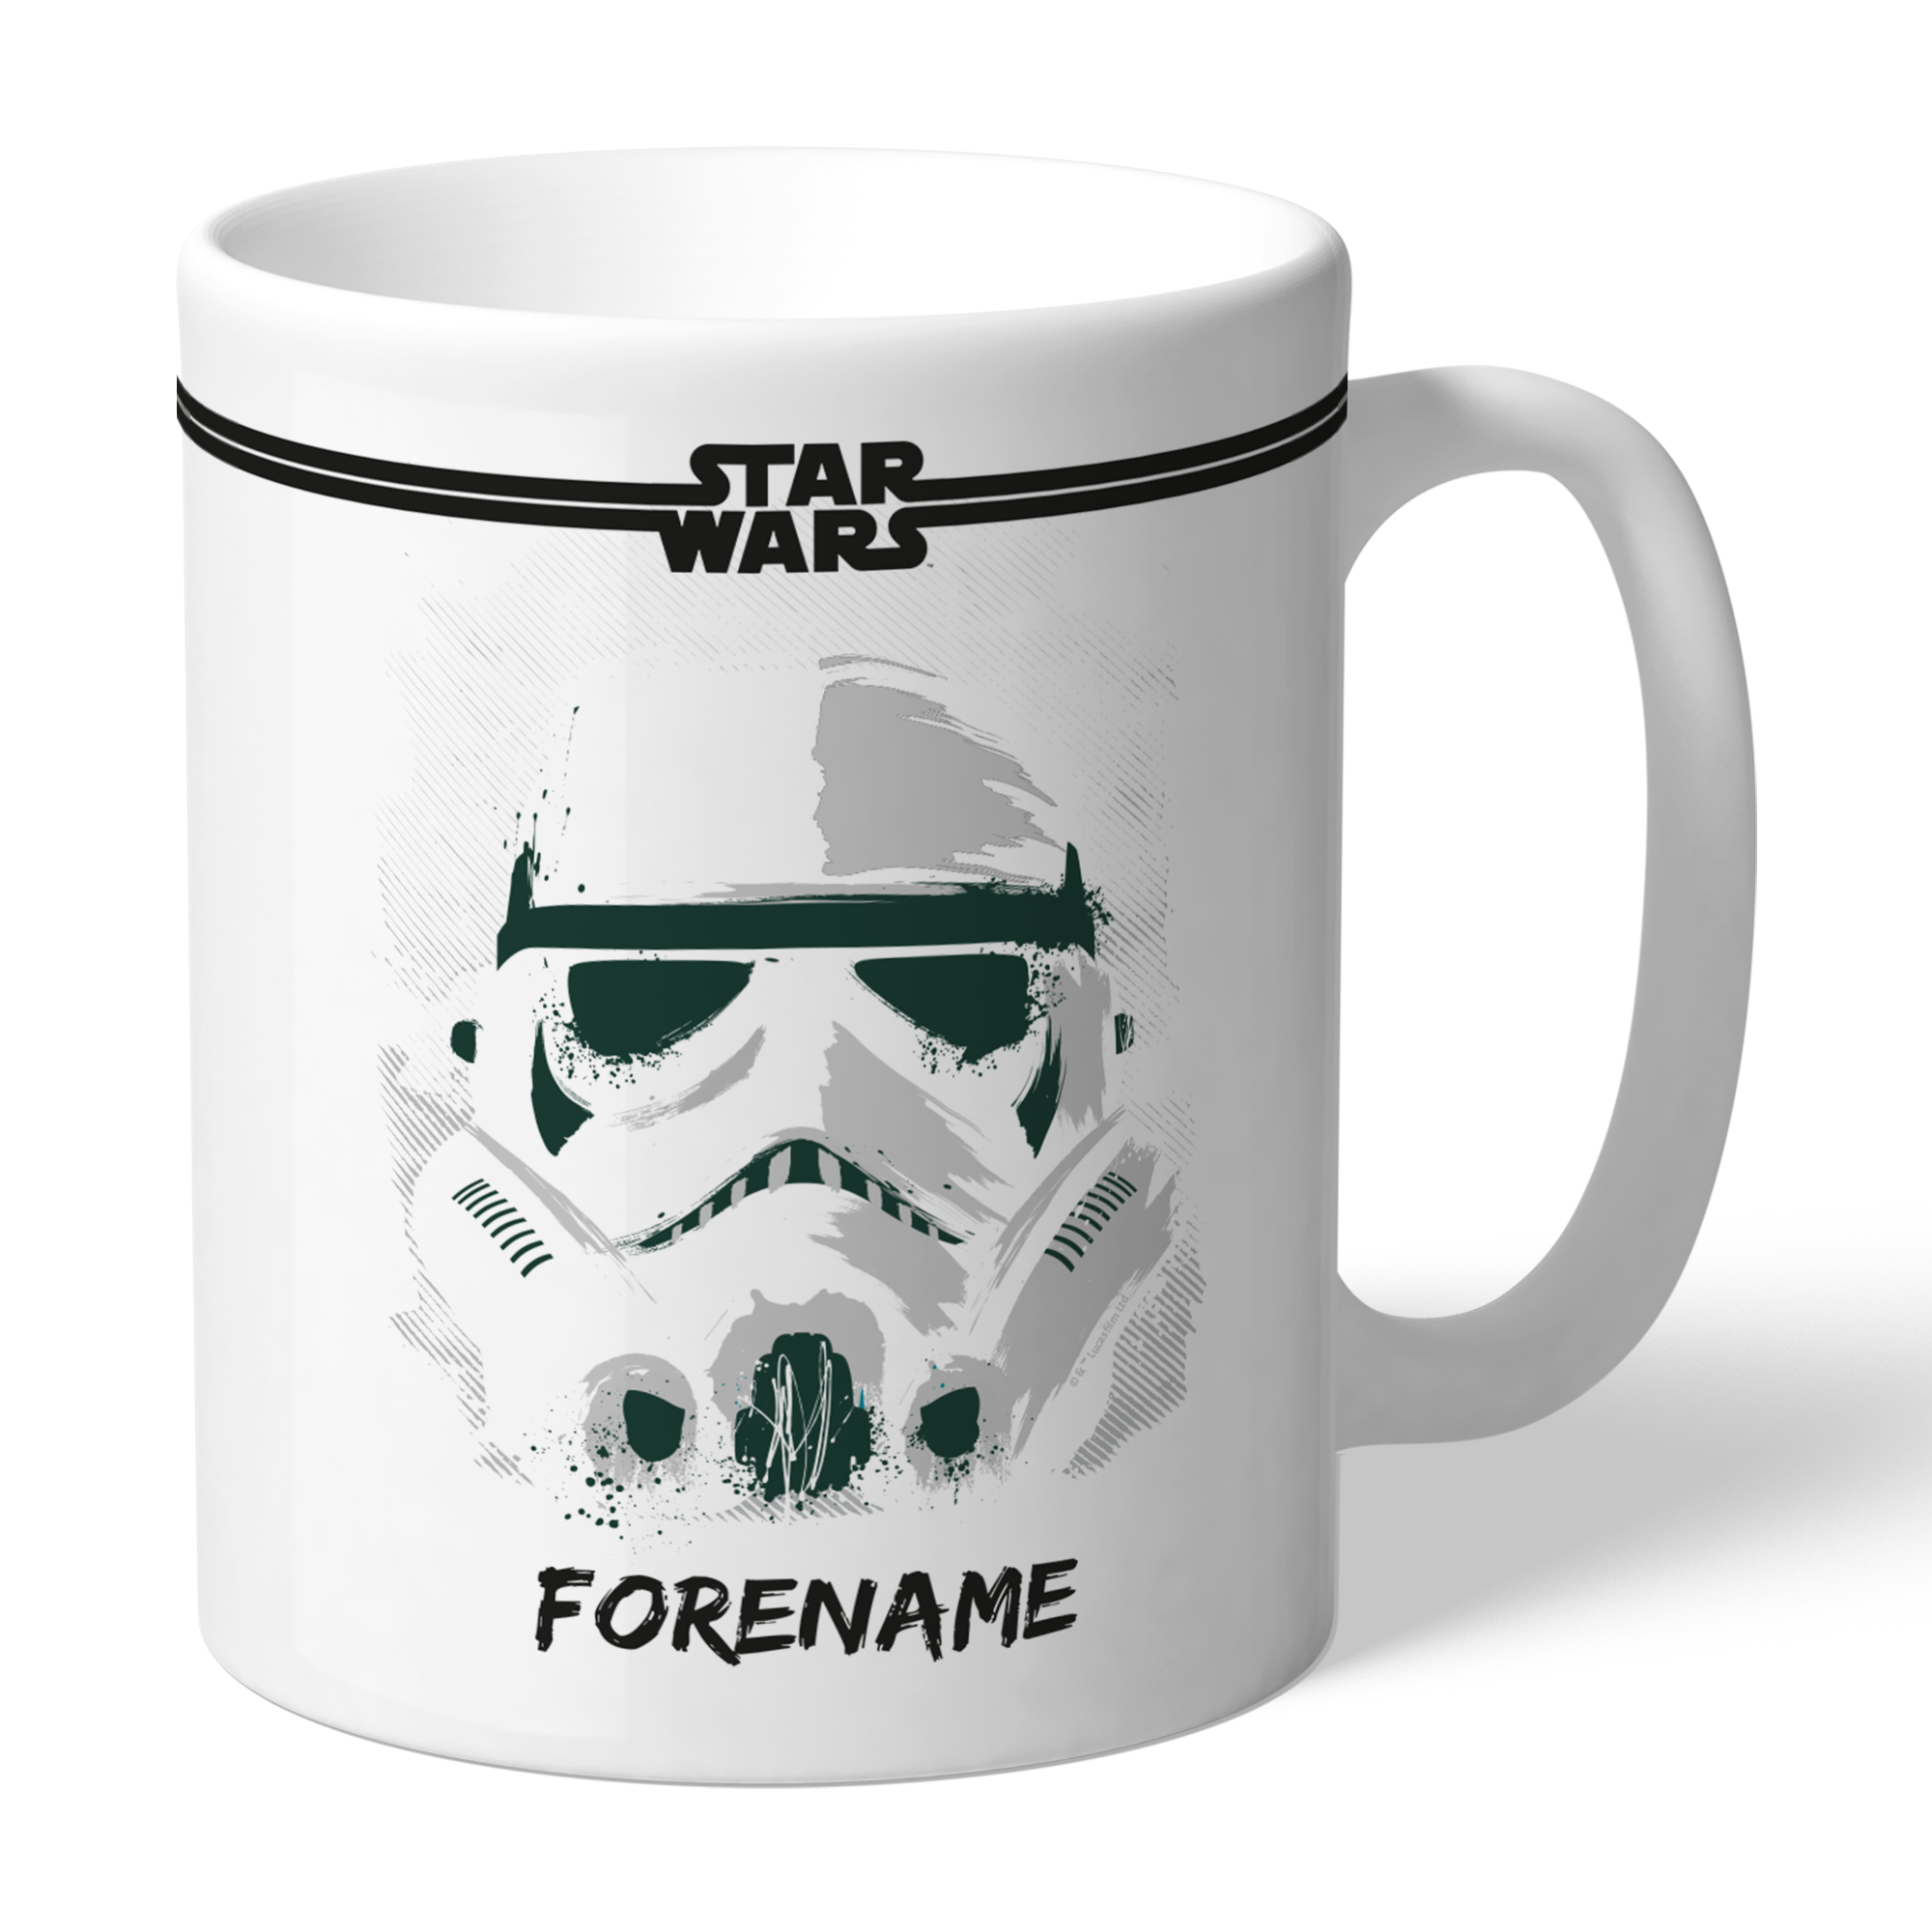 Star Wars Storm Trooper Paint Mug - 15,99 ���������